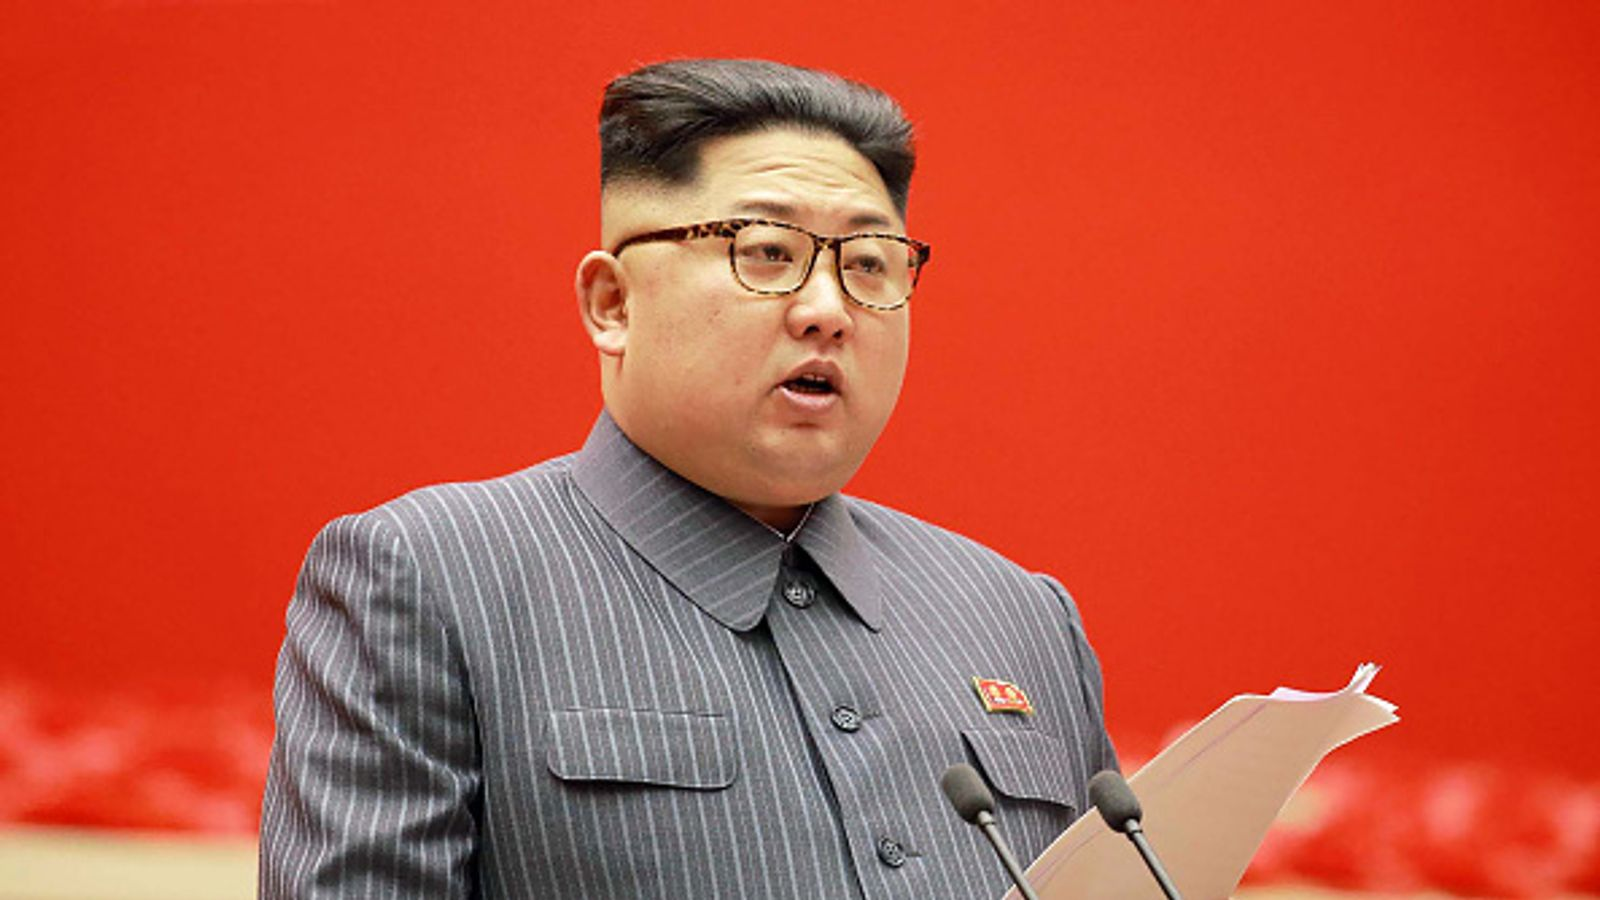 North Korea using cryptocurrency to evade sanctions